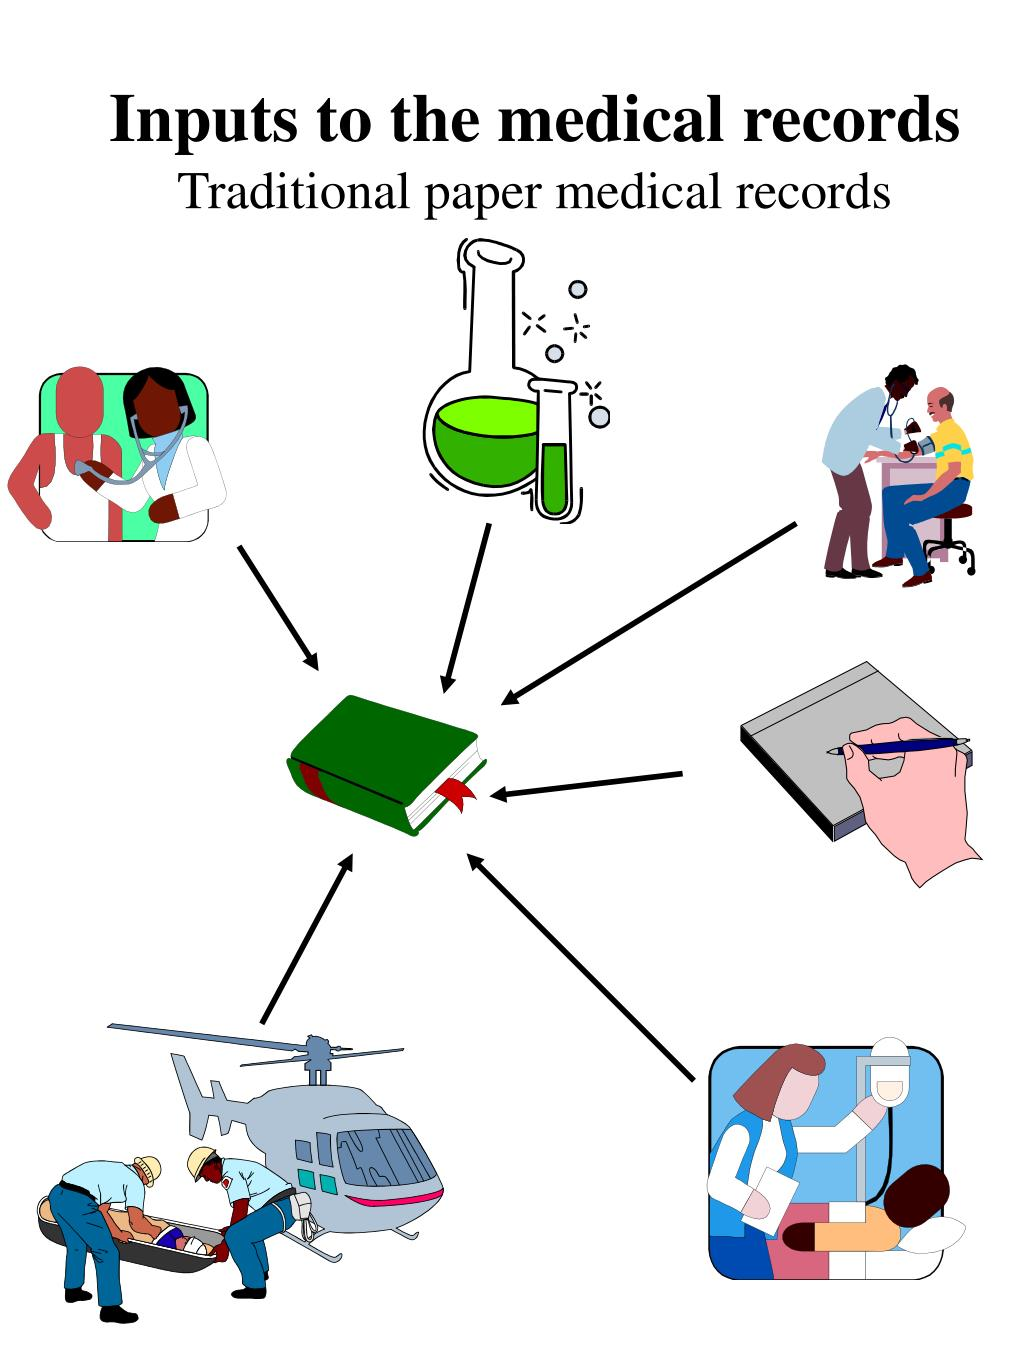 Inputs to the medical records